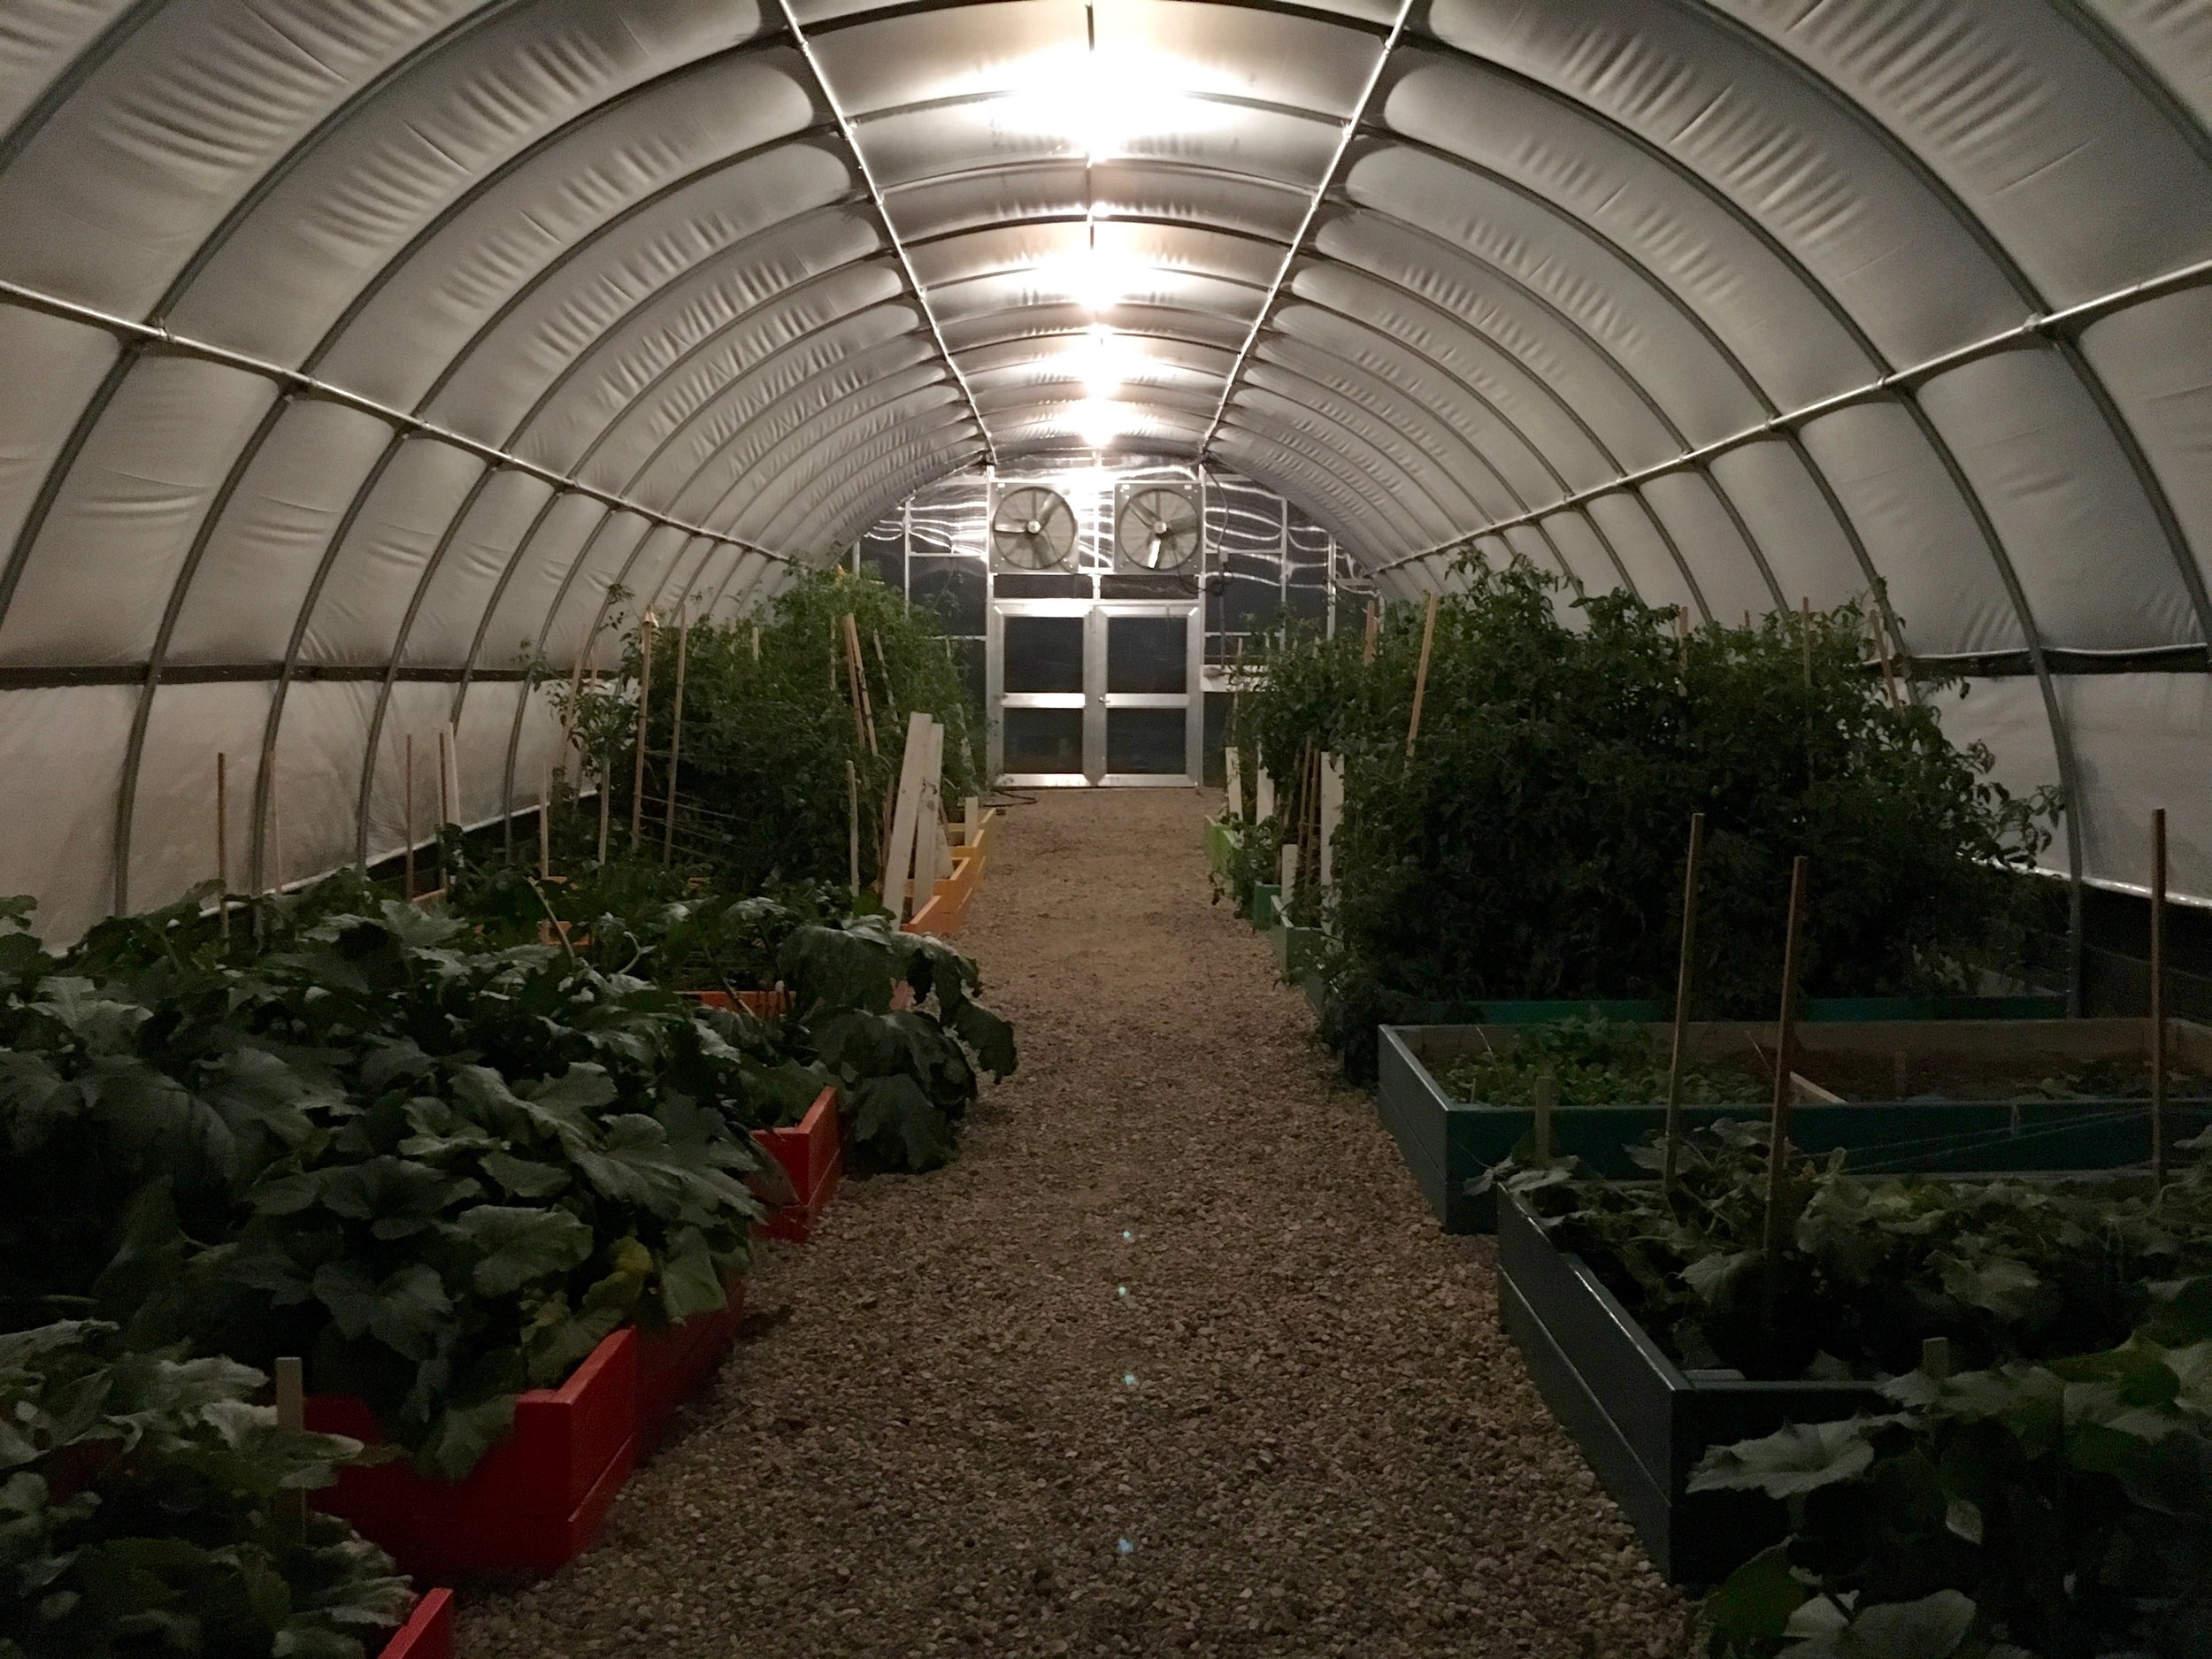 The greenhouse aglow in the evening!